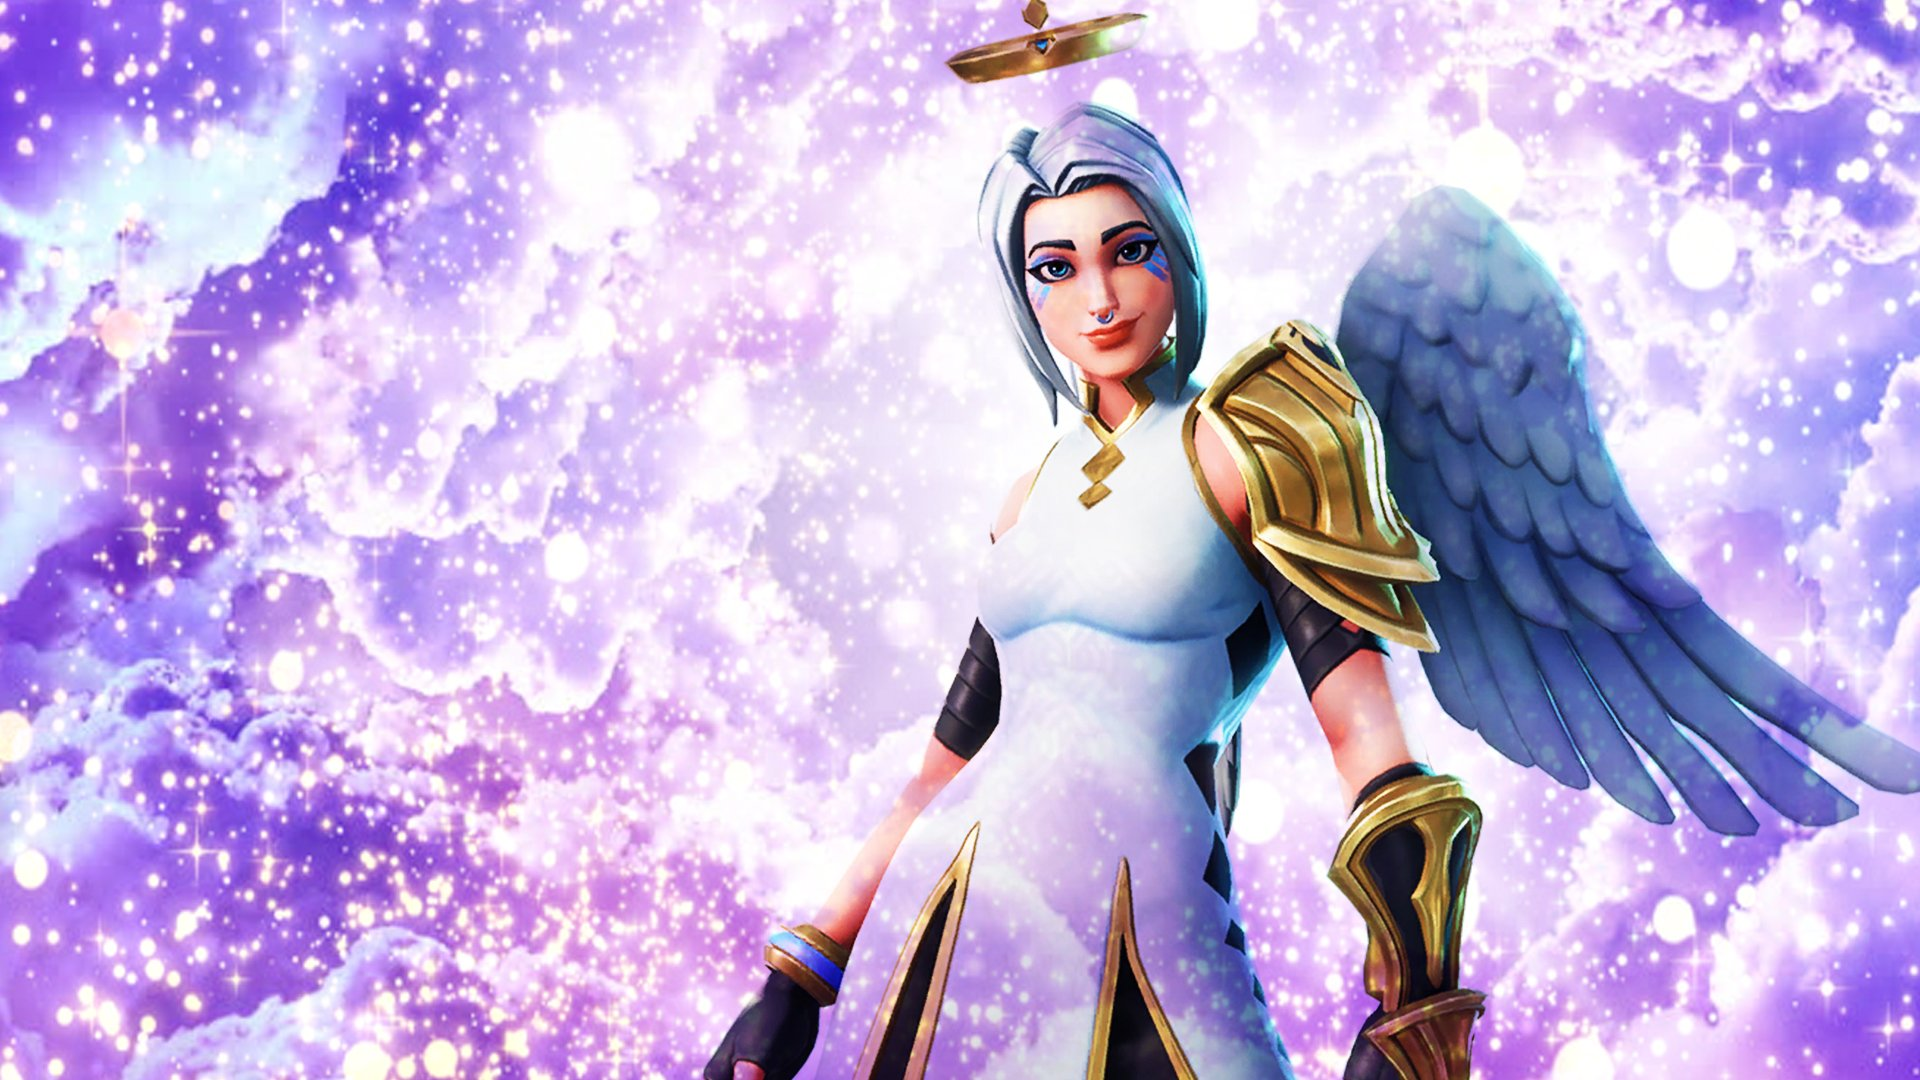 Download fortnite ark new skin hd background by - Ventura fortnite ...